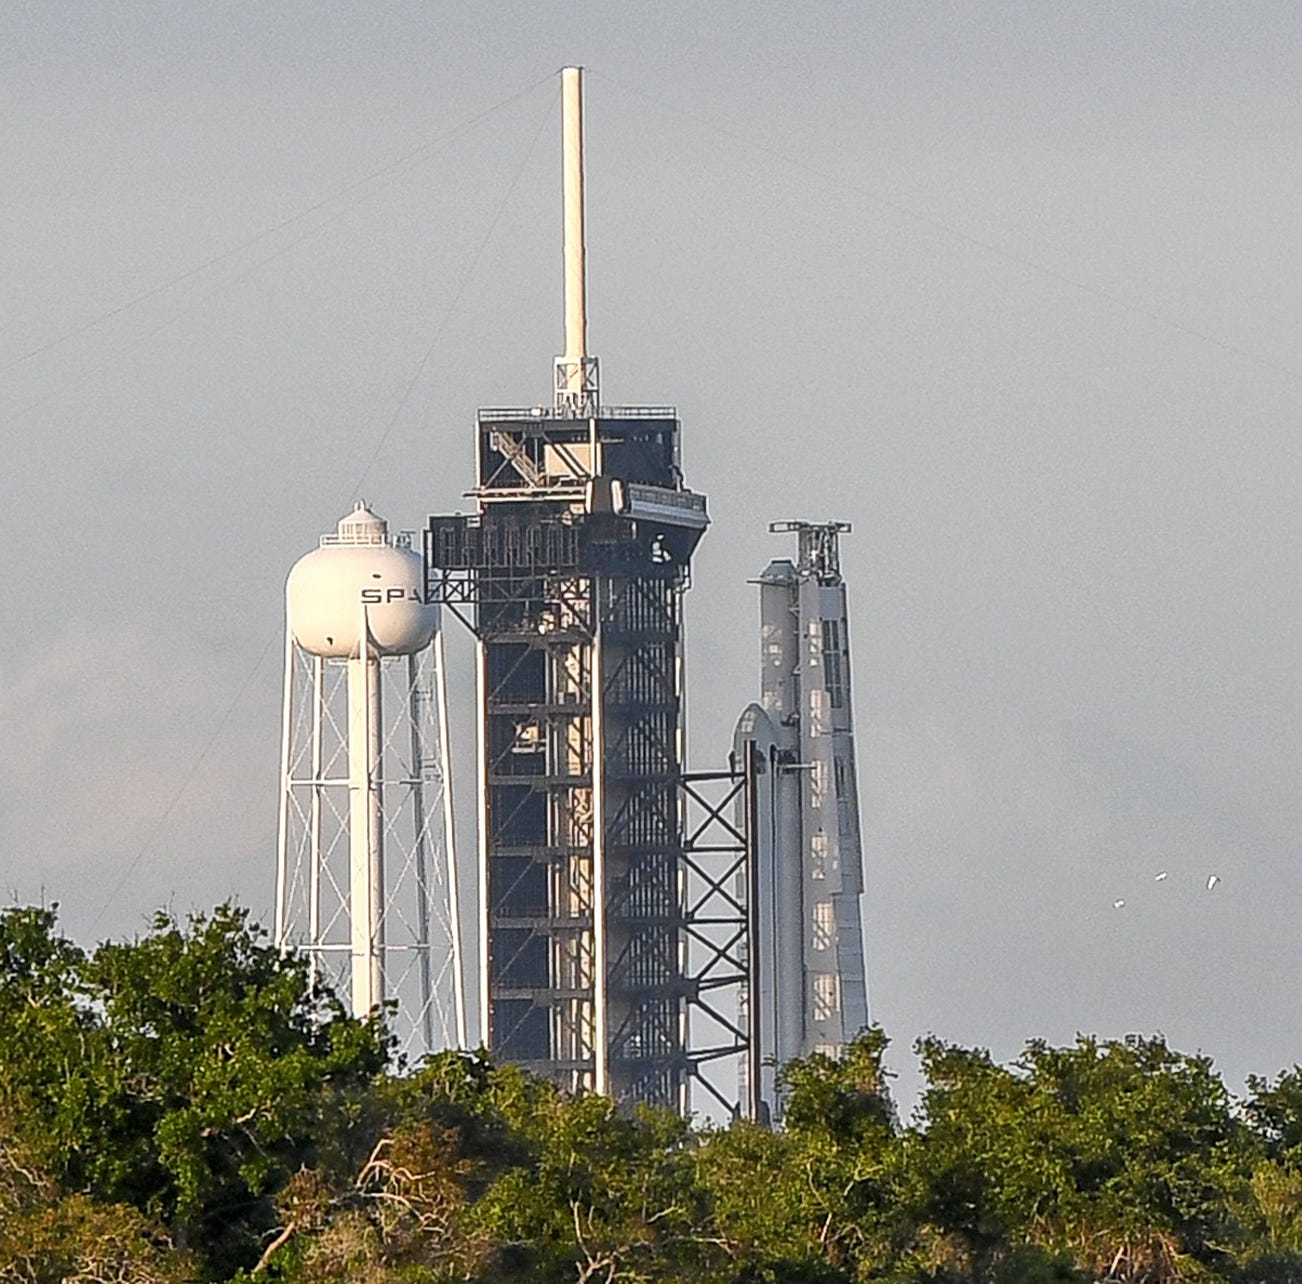 SpaceX's Falcon Heavy rocket is gearing up to take over the Space Coast a second time